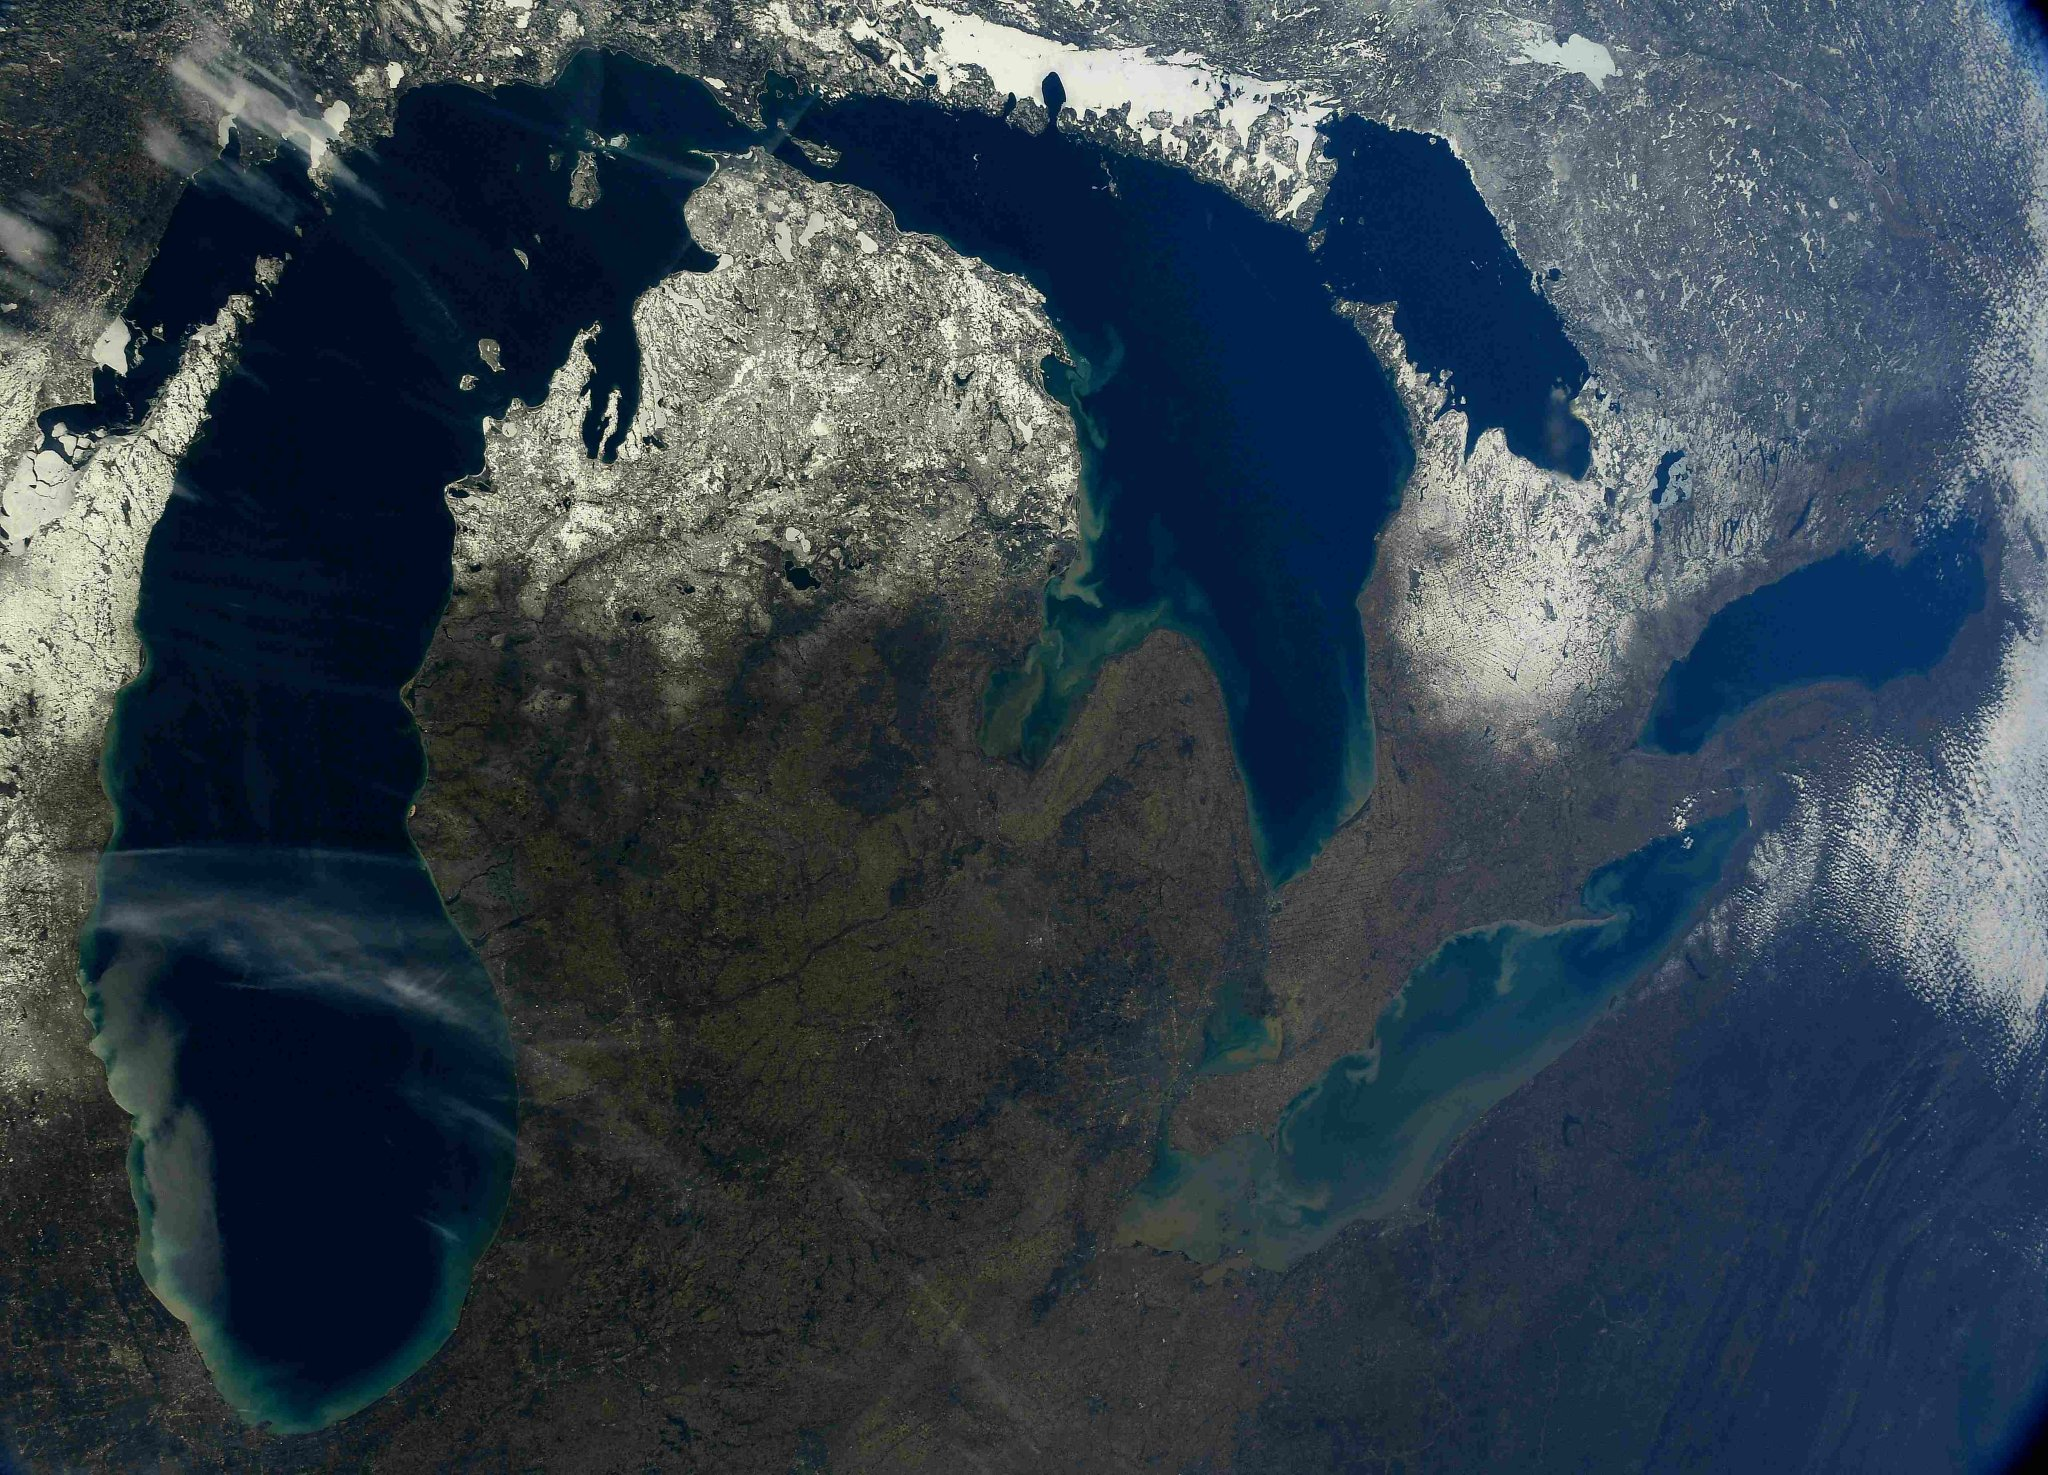 The Great Lakes looking grand on a clear spring day. #Chicago #Detroit #Toronto (Photo & Caption: Ricky Arnold / NASA)